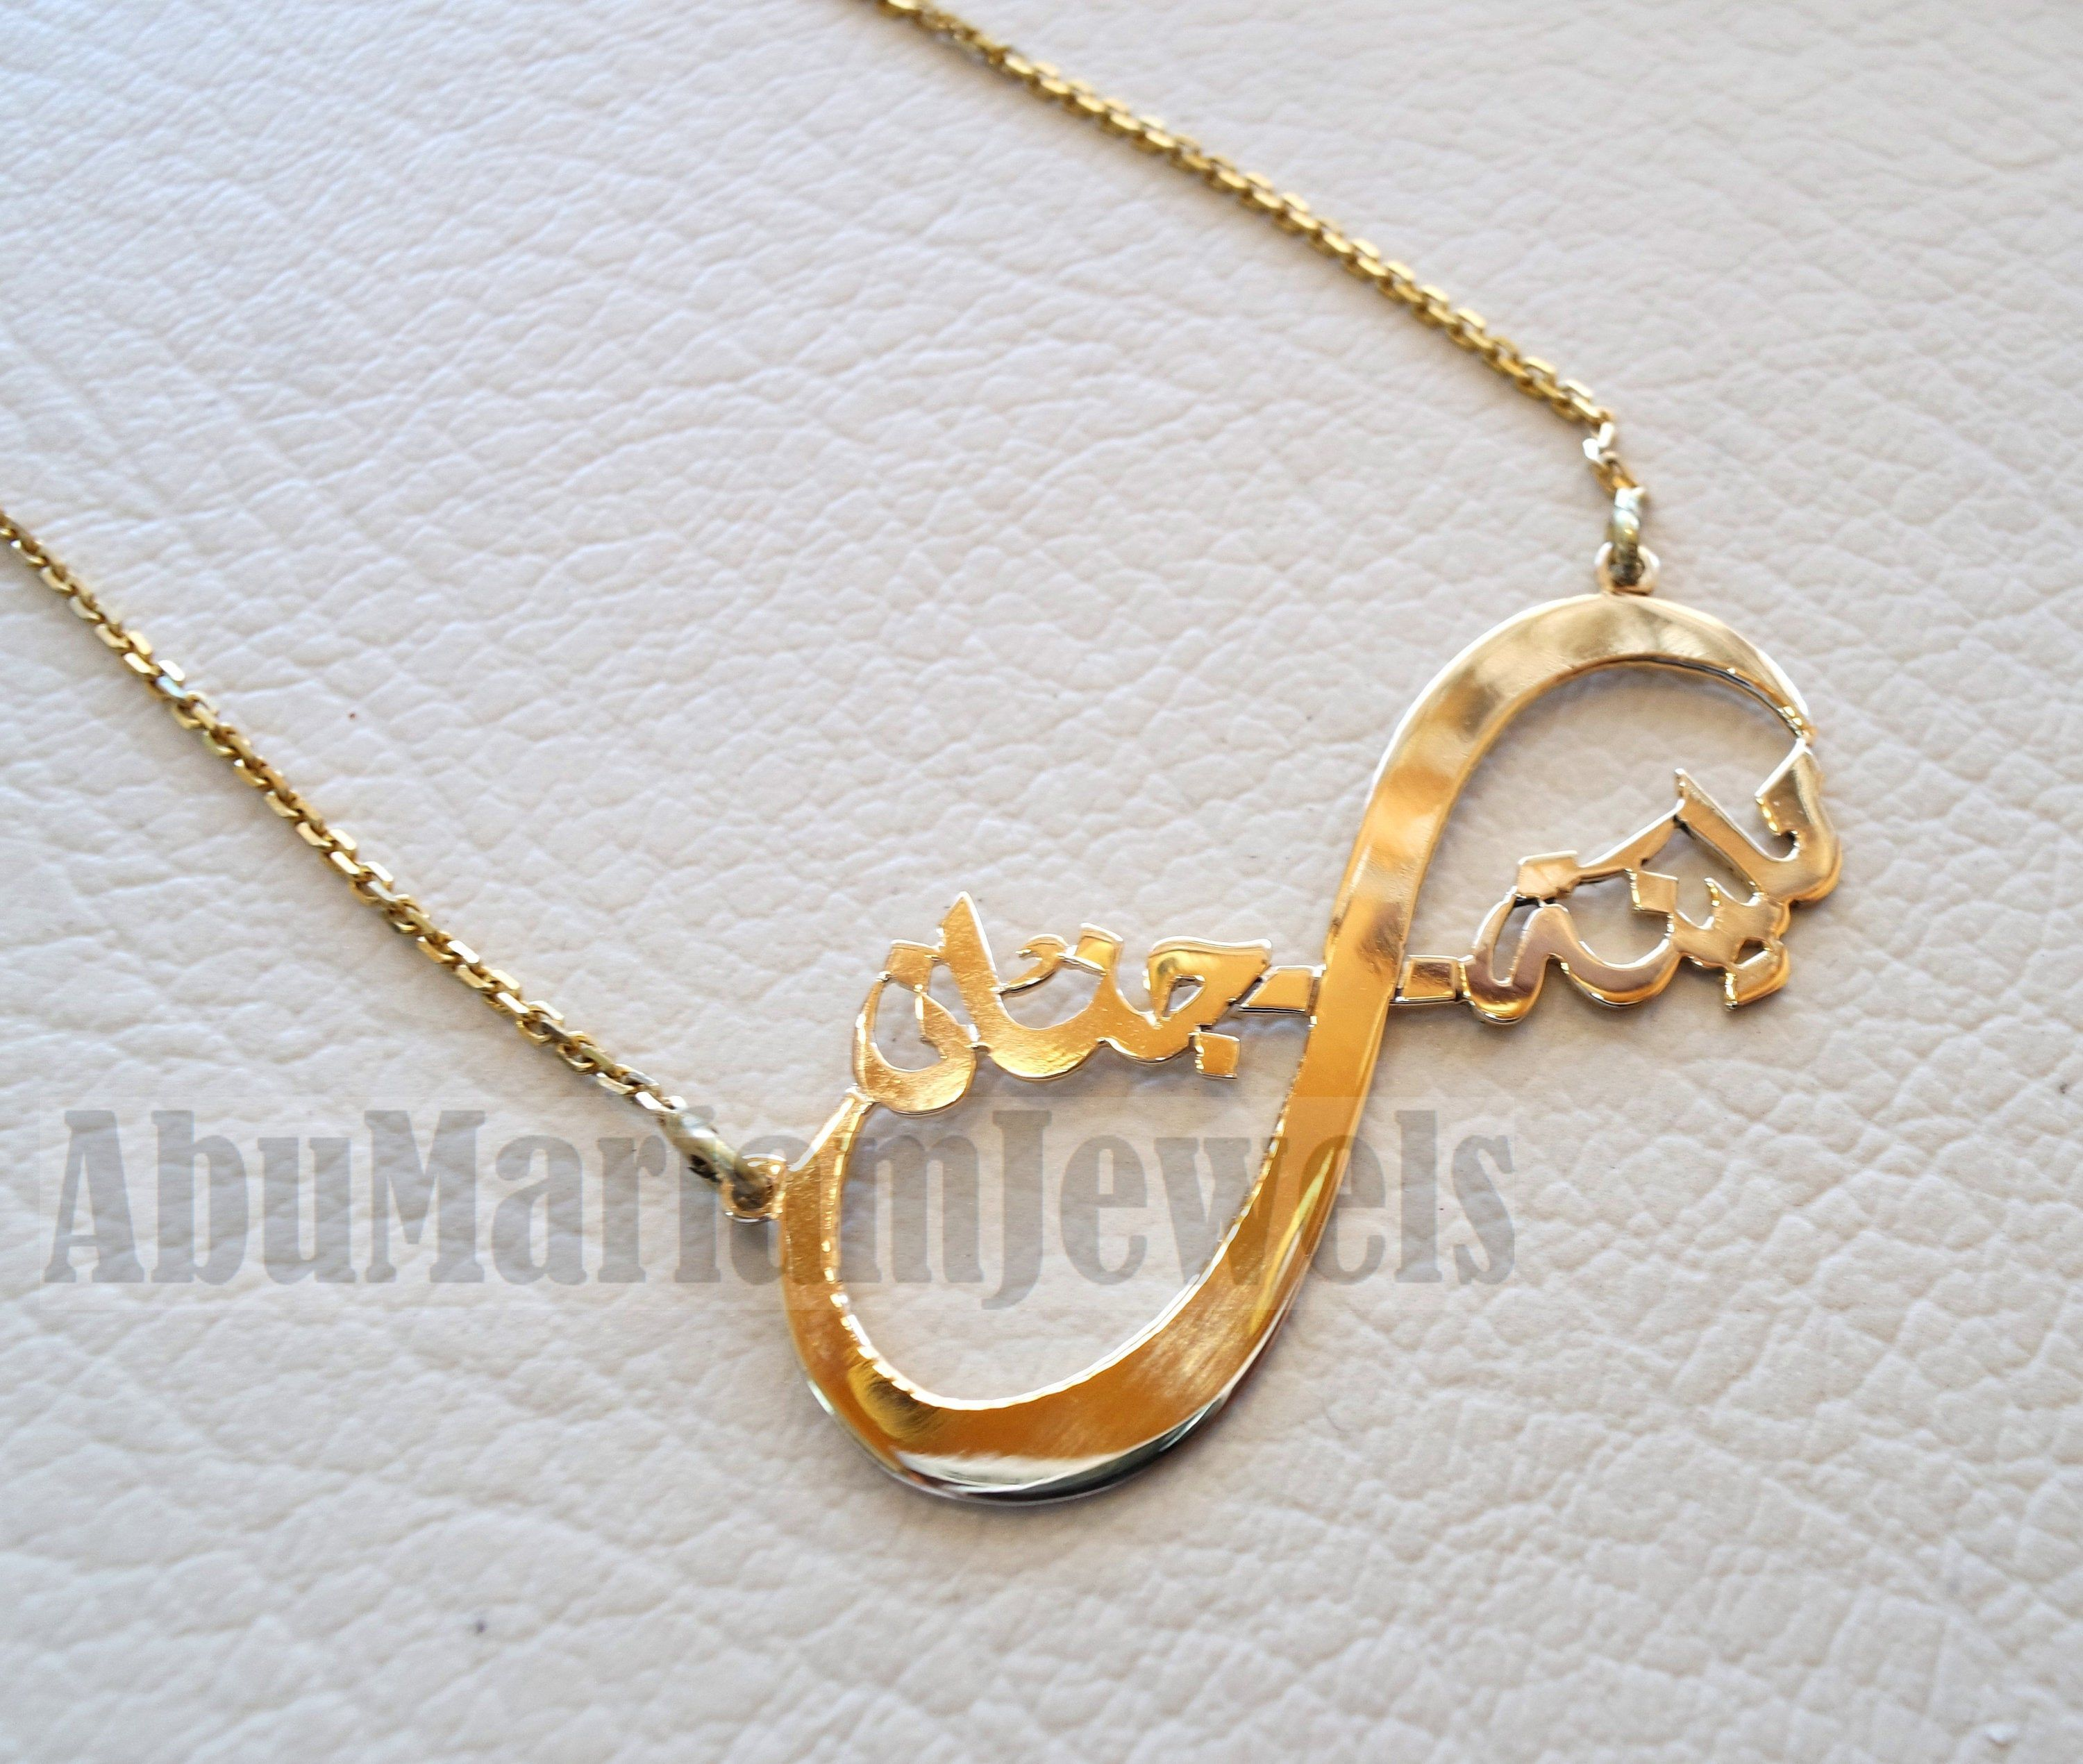 Personalized Customized 2 Names 18 K Gold Arabic Calligraphy Etsy Fine Jewelry 18k Gold Gold